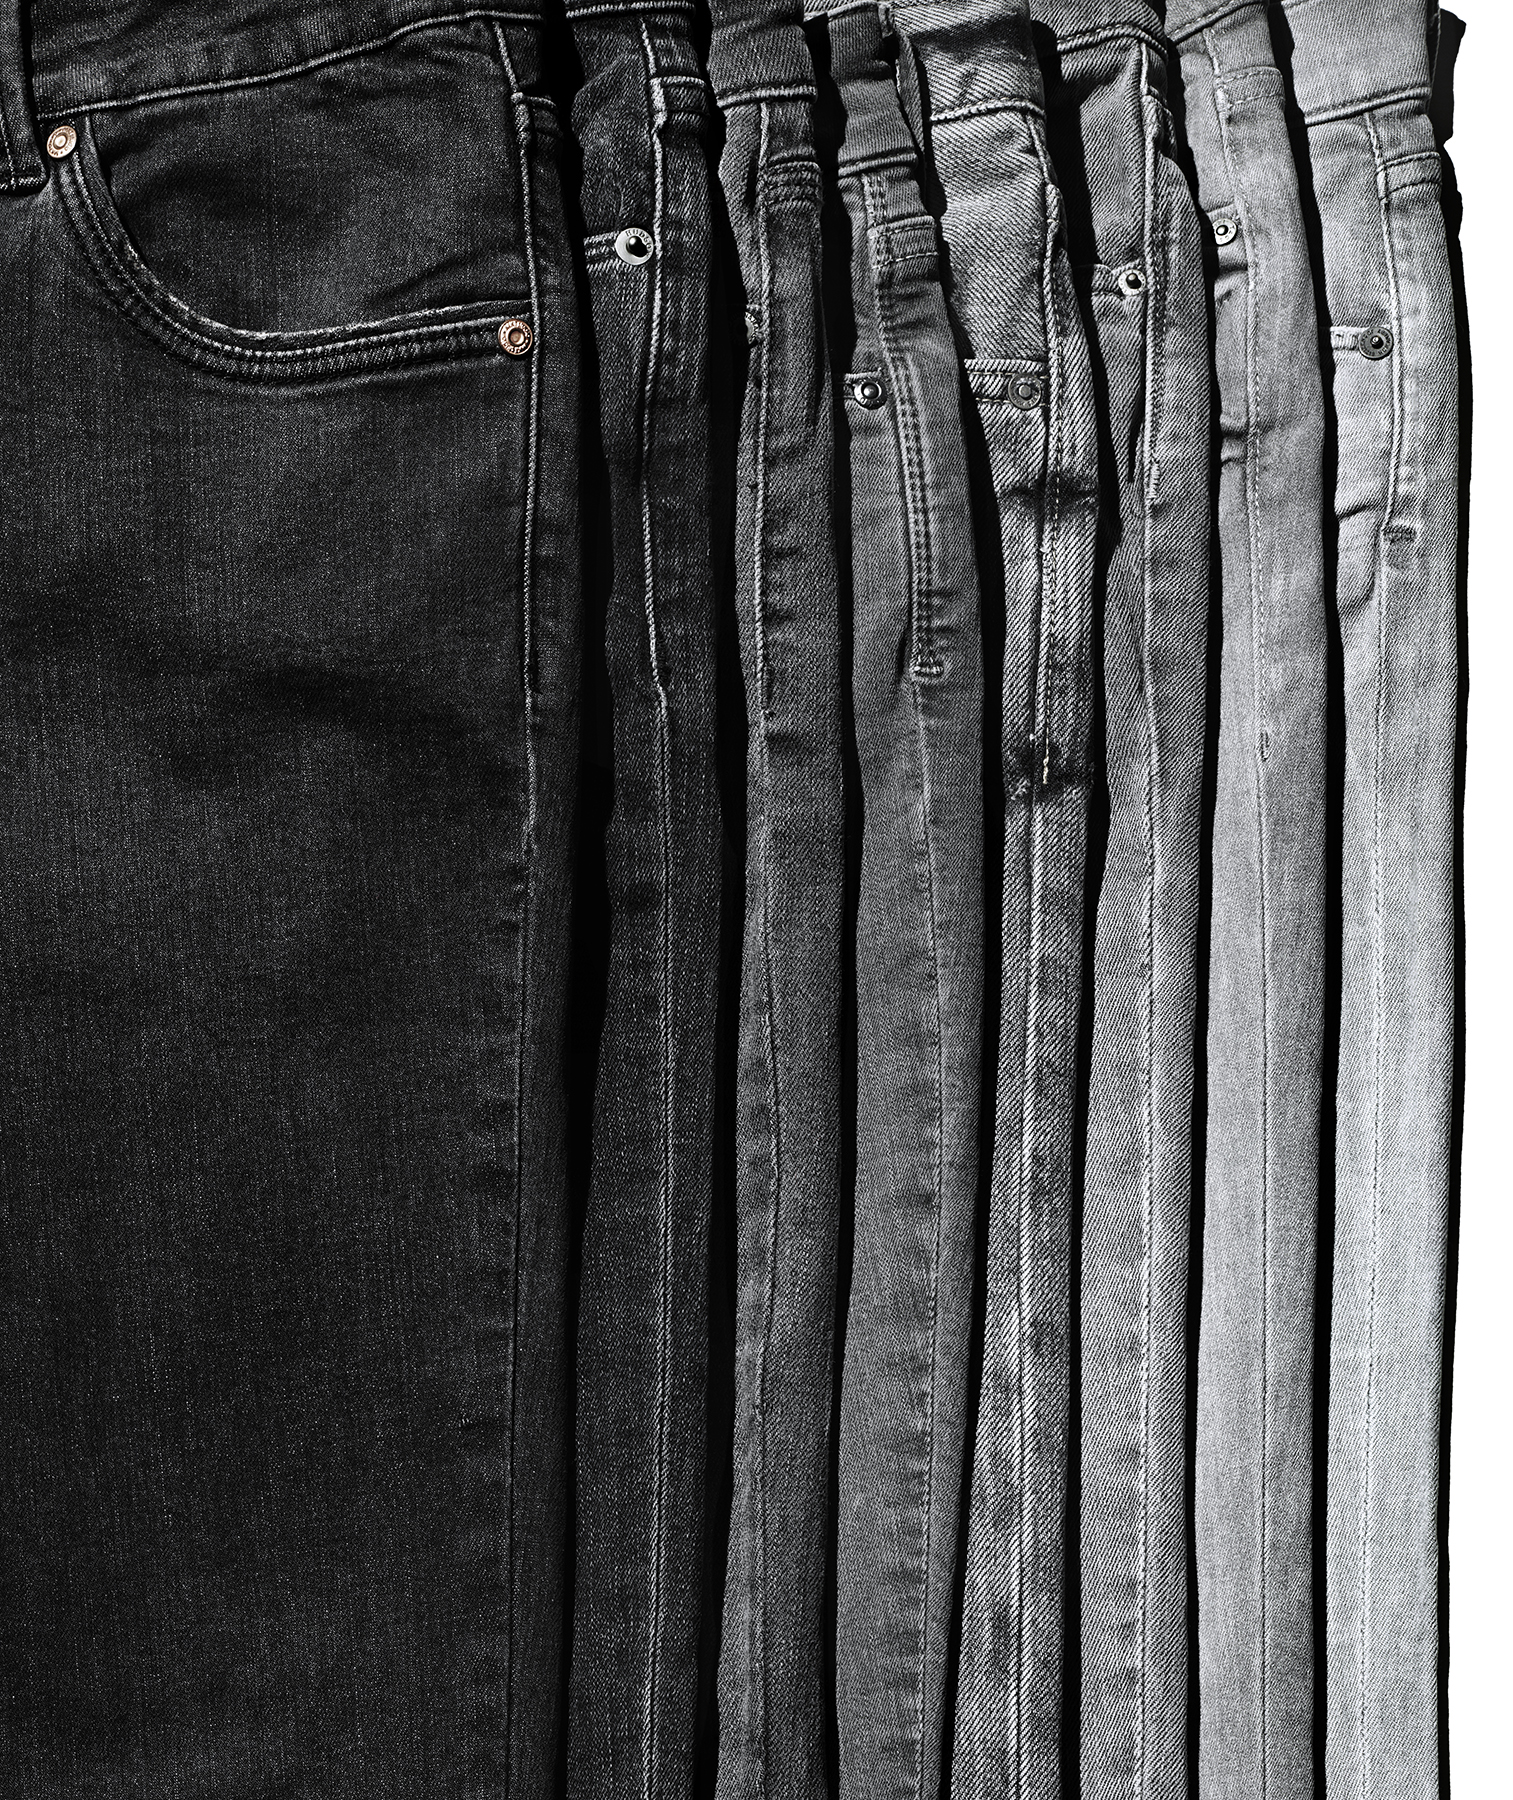 Jeans in shades of gray